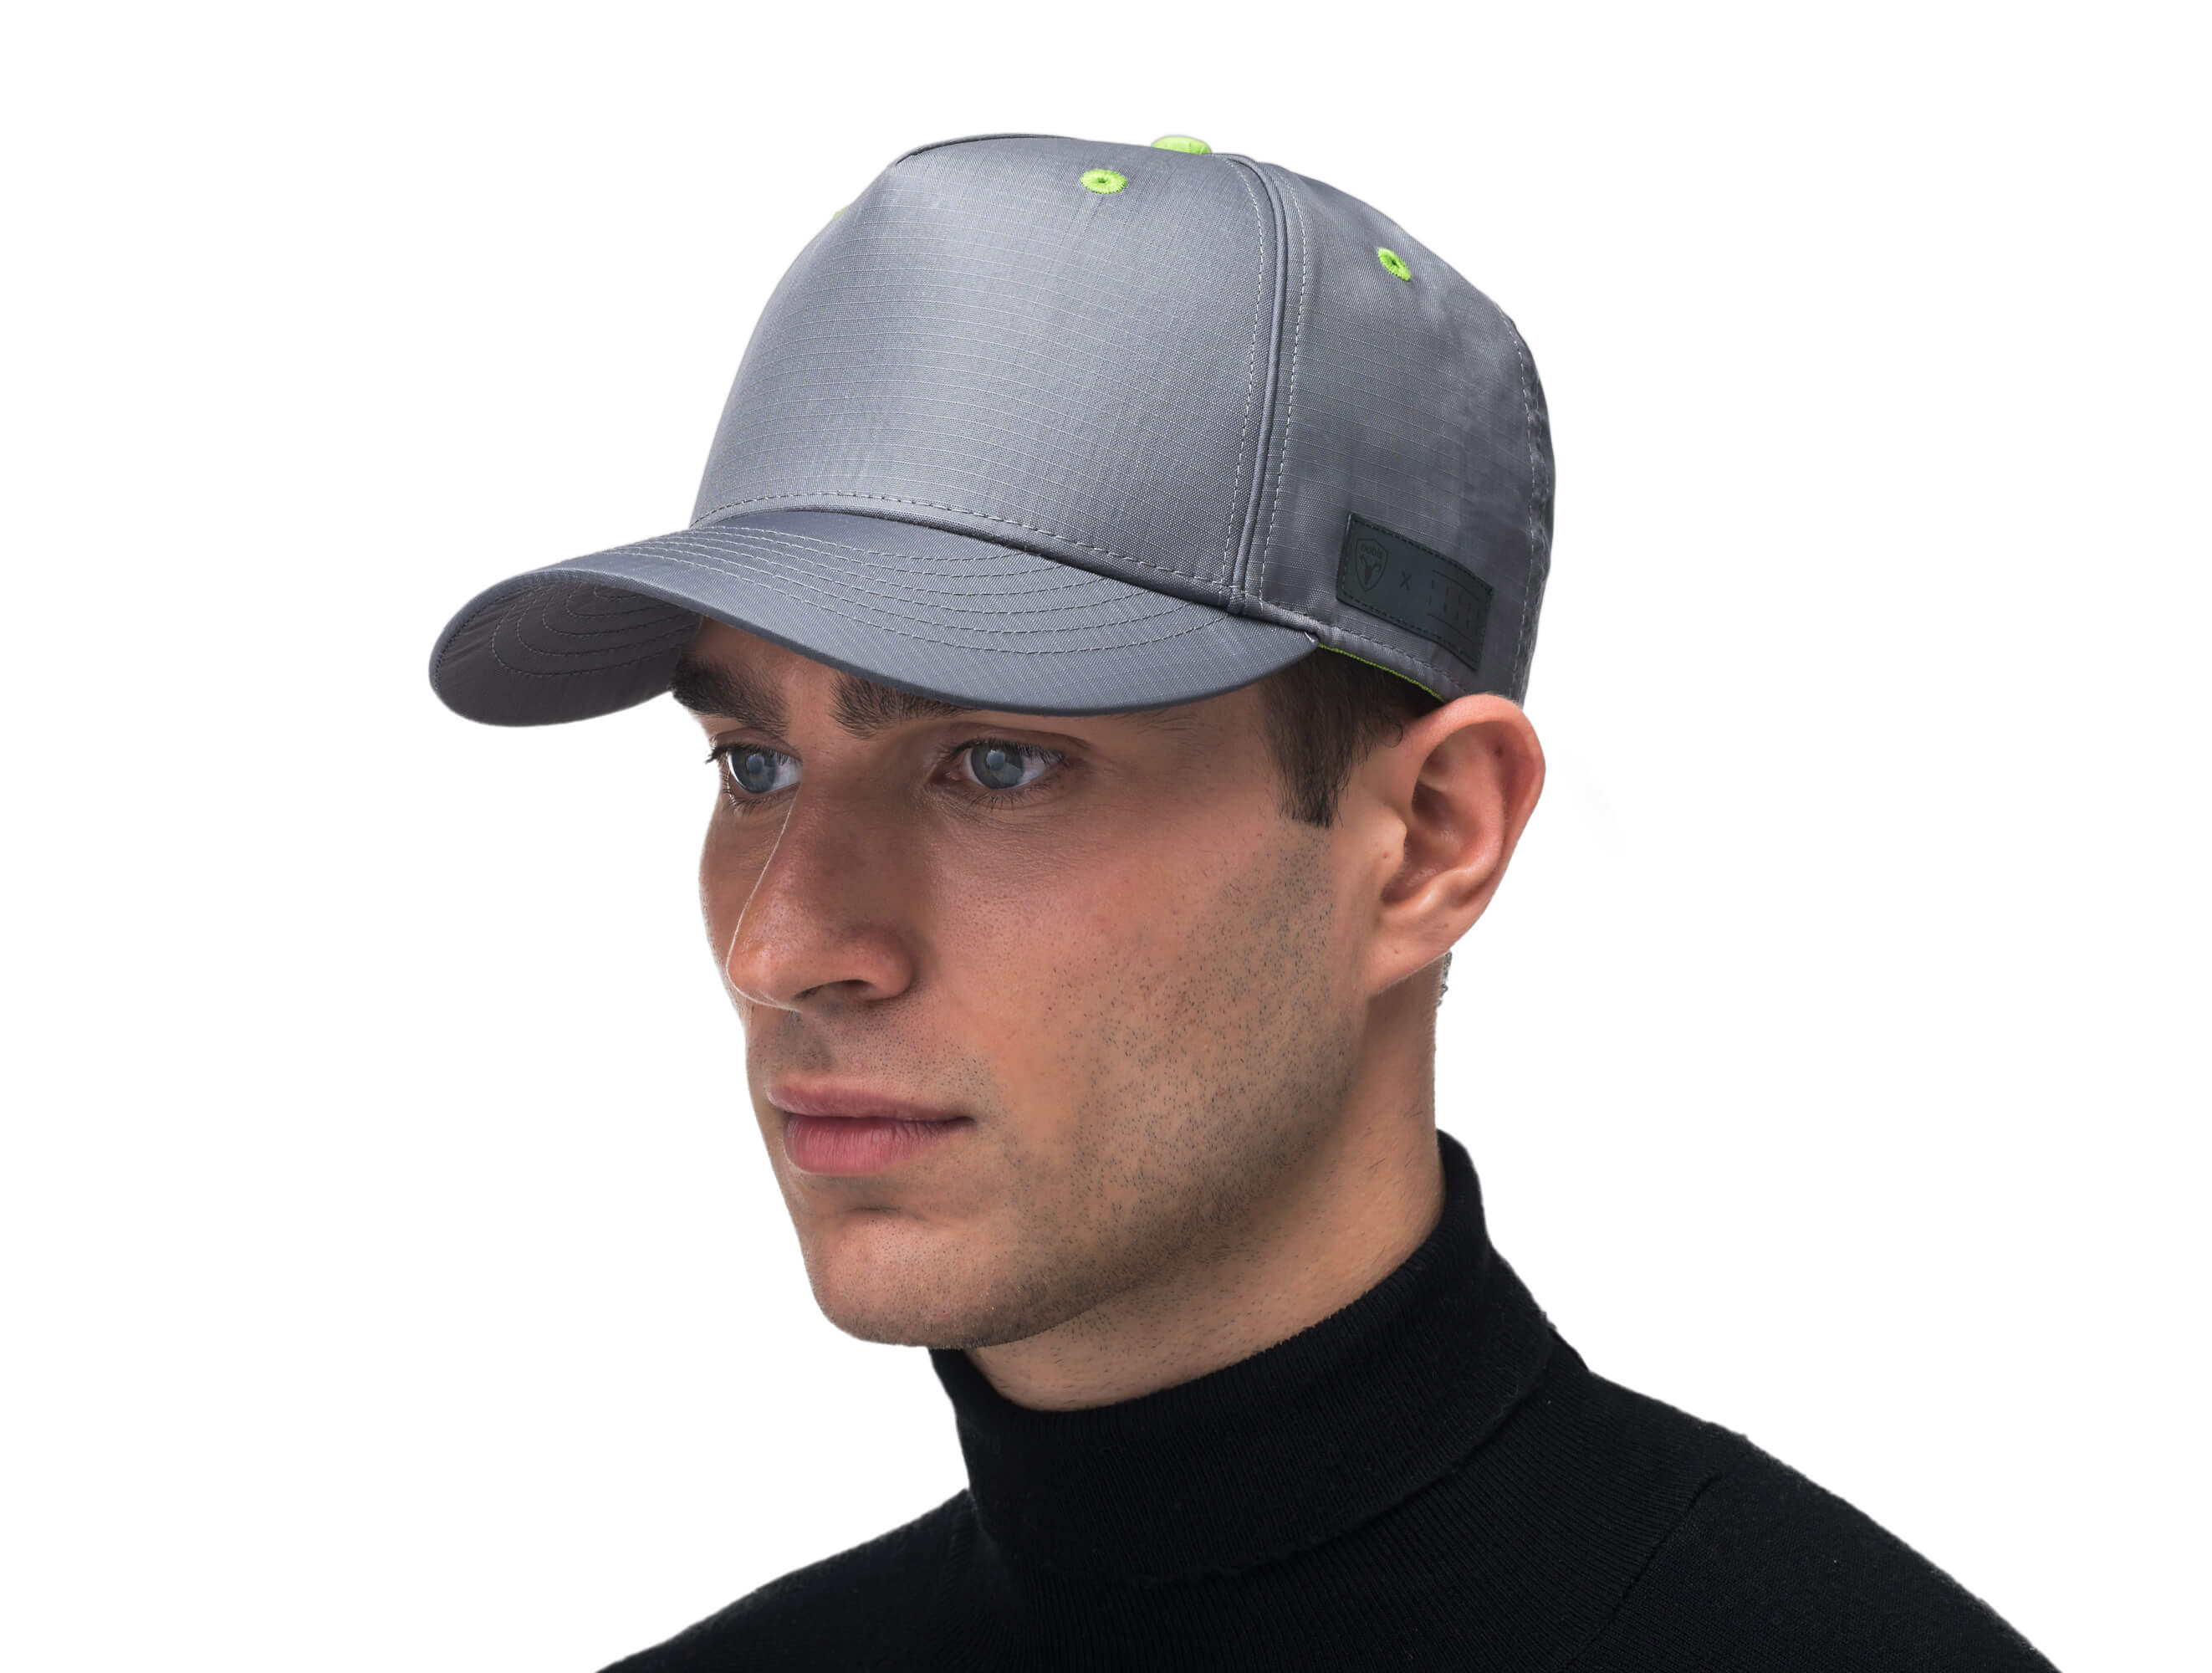 Unisex 5 panel baseball cap with adjustable back and contrast colour detailing in Concrete | color